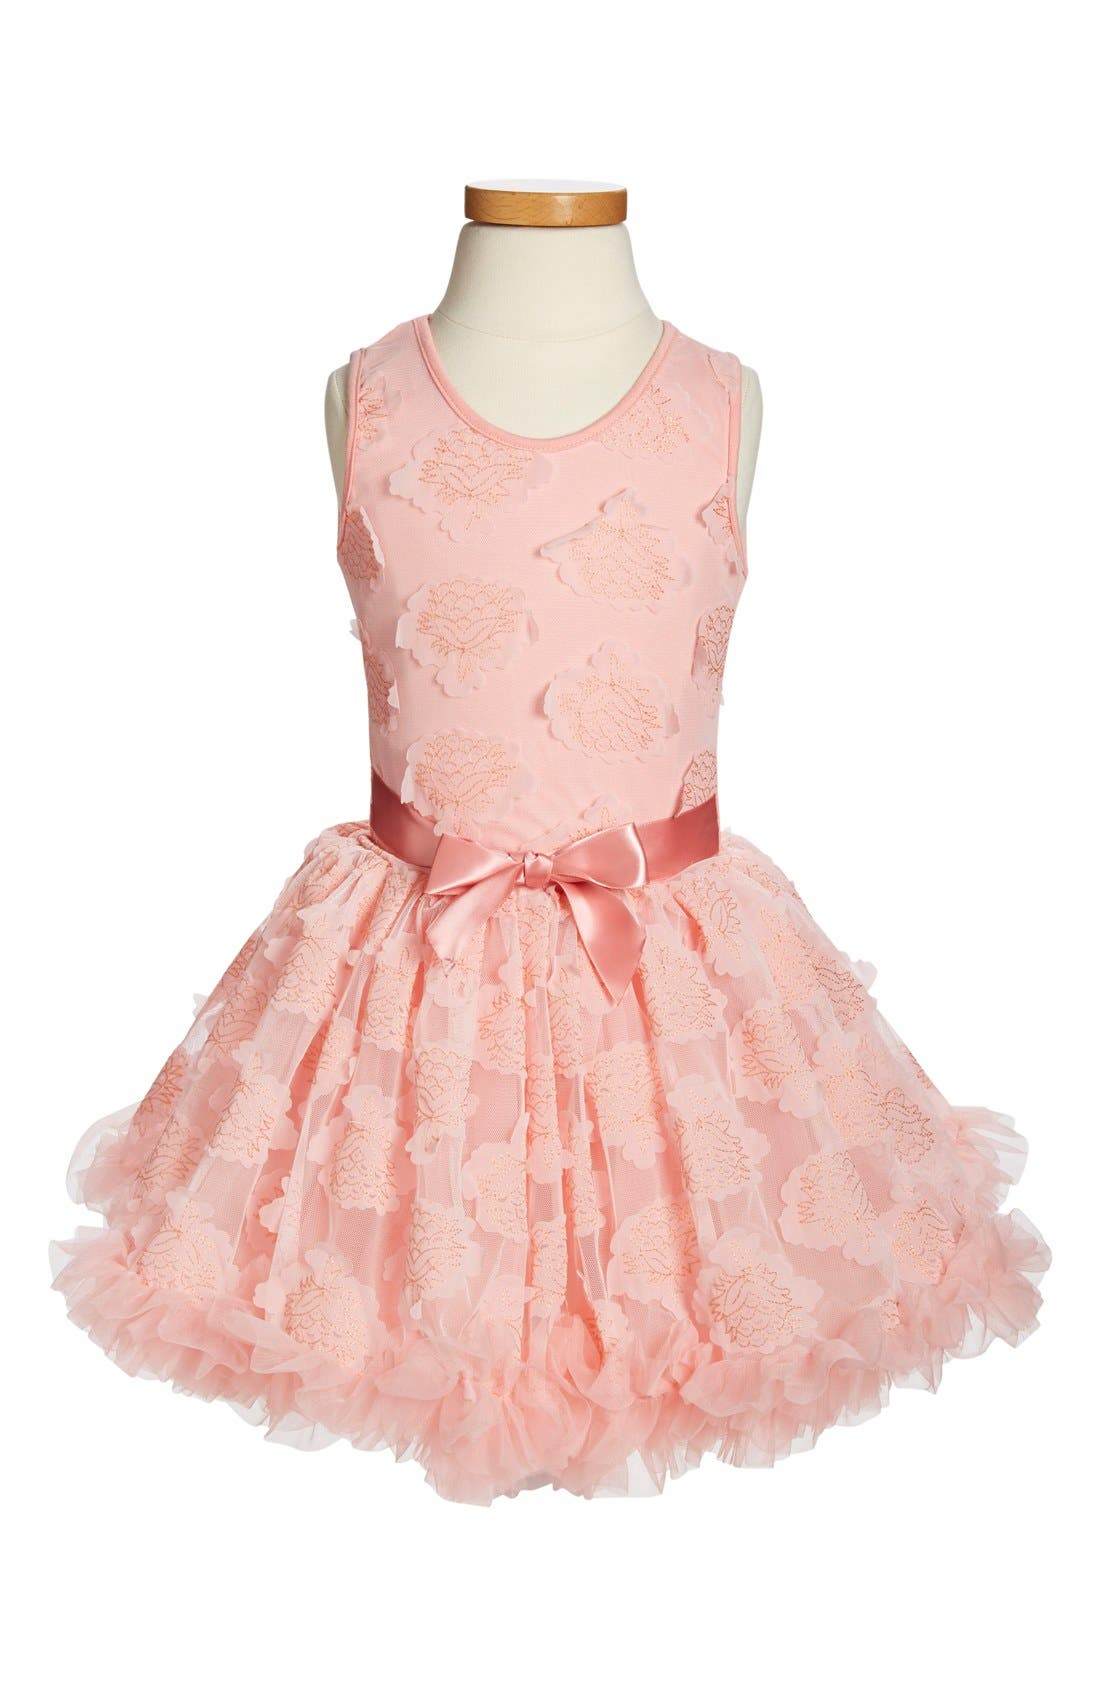 POPATU Peach Flower Petal Pettidress